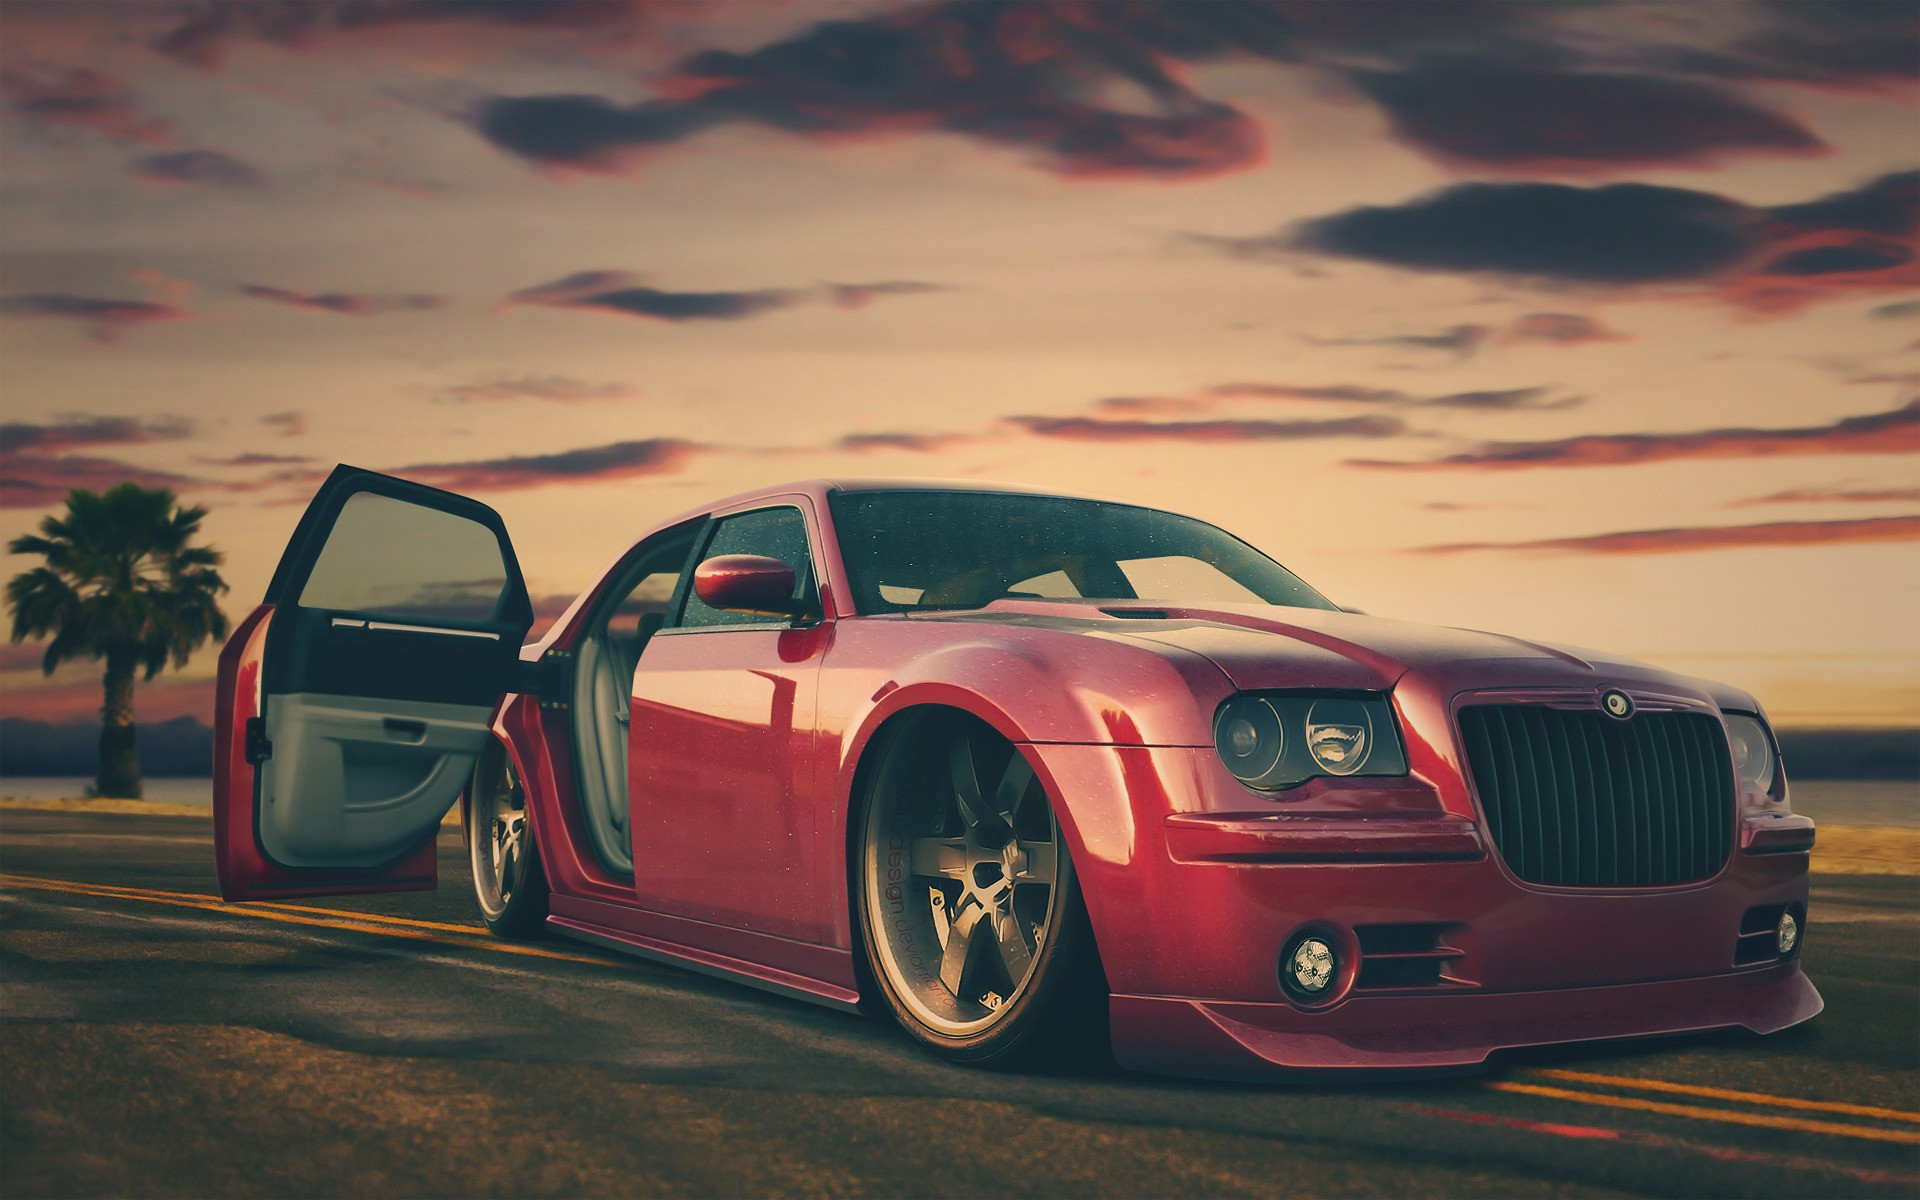 Desktop Images of Chrysler: 08.09.13 by Lavonda Shurtz